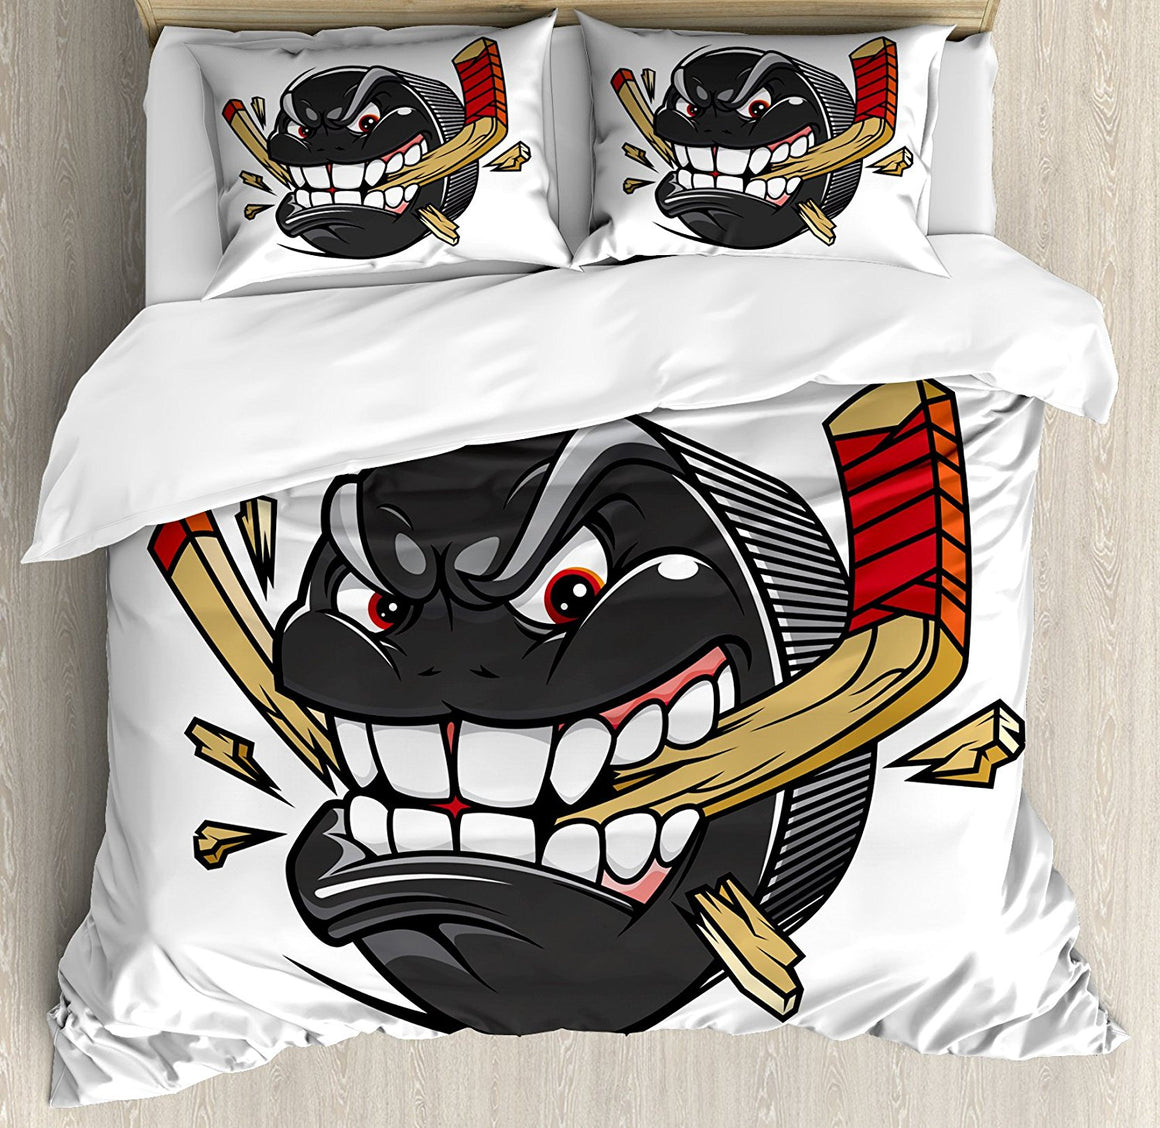 3D Hockey Puck Bedding Set Duvet Cover, Pillow Cases and Bed Sheet - 3 pcs